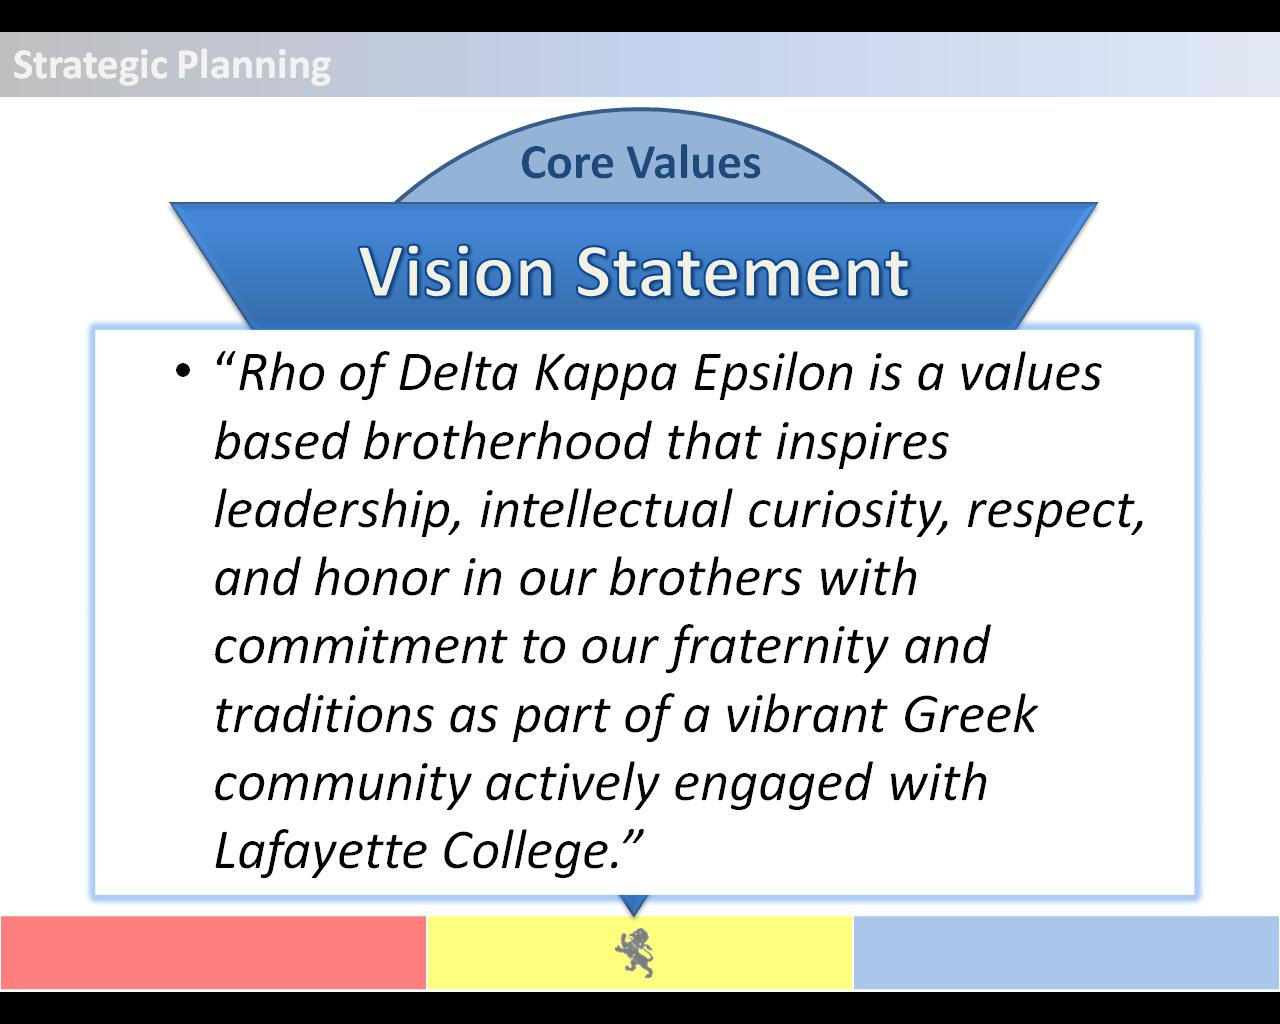 kodak strategic vision statement Best practice implementing a mission, vision strategic quality management goals must focus on both financial goal statements from the eastman kodak company.